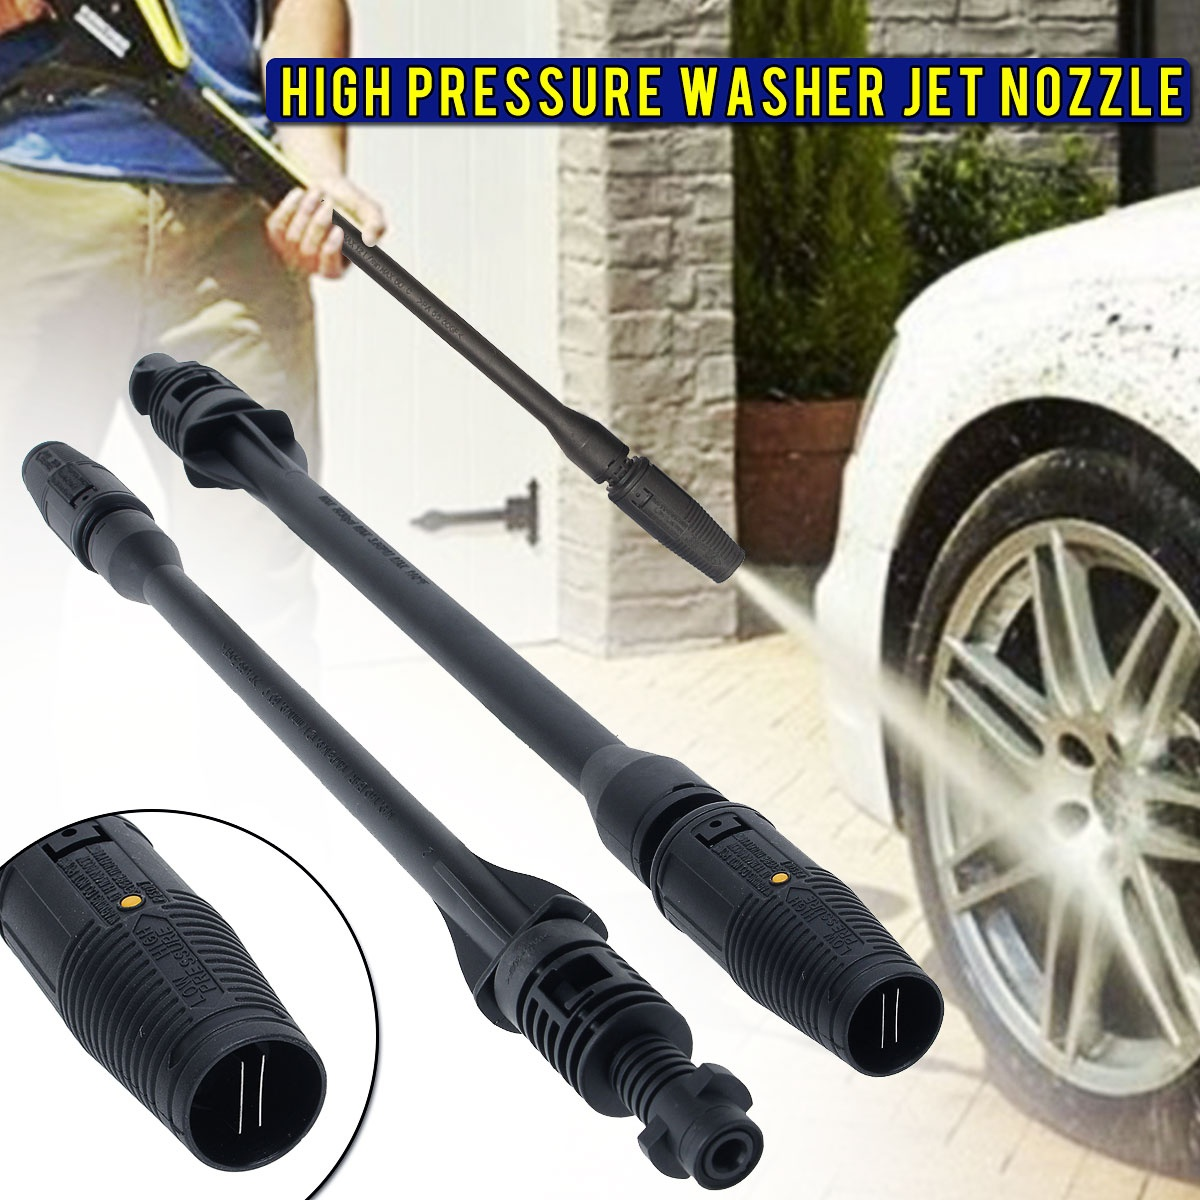 Car Washer Jet Lance Nozzle for Karcher K1 K2 K3 K4 K5 K6 K7 High/Low Pressure 160bar Car Washing Tools Garden Water Jet Washer